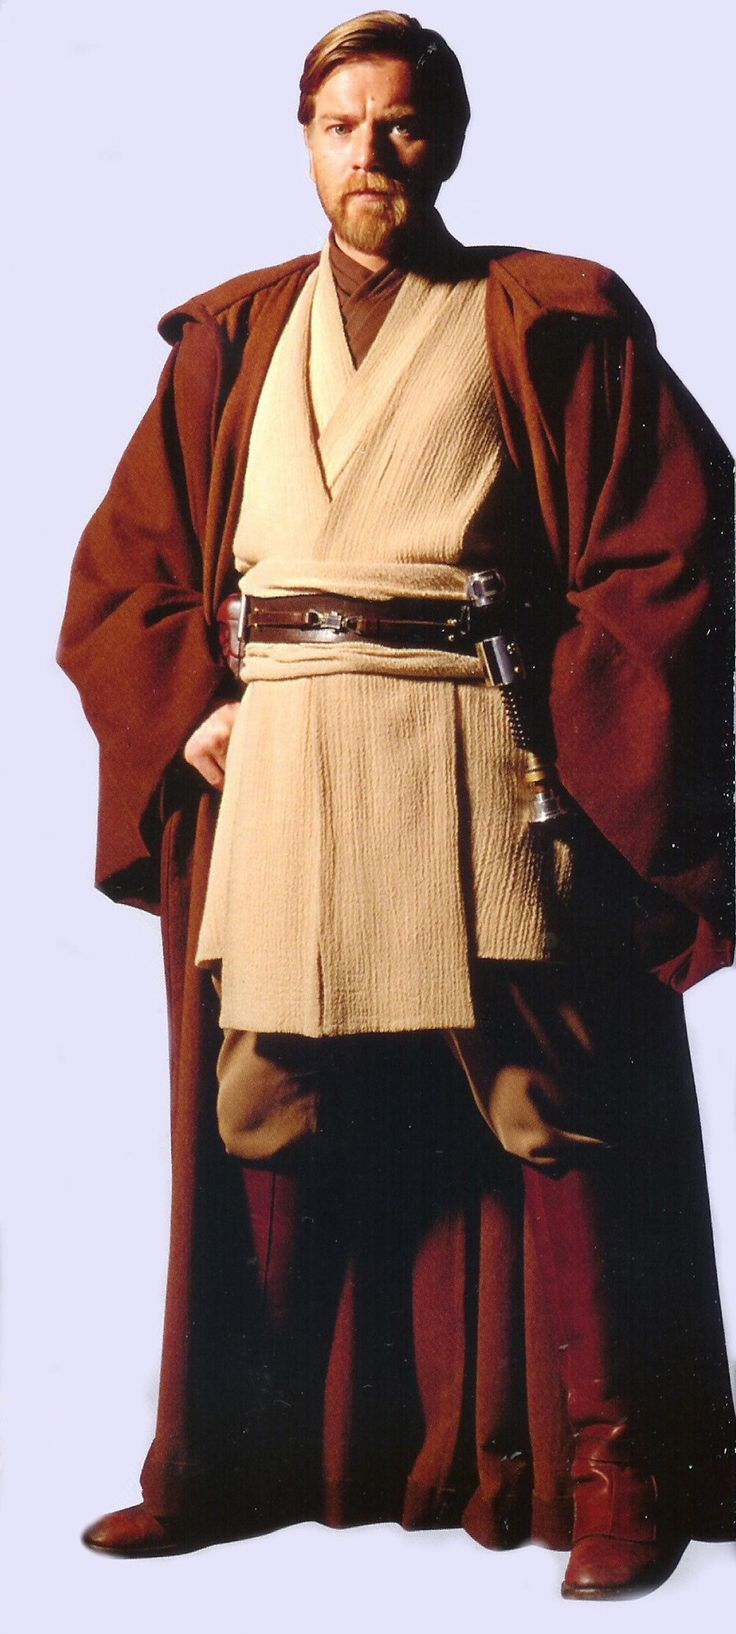 Obi-Wan Kenobi Custom Costume Jedi Knight Adult Cosplay Jedi halloween men adult. Brand New. $ Buy It Now. SPONSORED. Deluxe STAR WARS Men's OBI WAN KENOBI Return of Jedi FULL Cosplay Costume XS-XL. Brand New. $ Buy It Now. Adult Deluxe Obi Wan Kenobi Clone Wars Costume. Brand New.